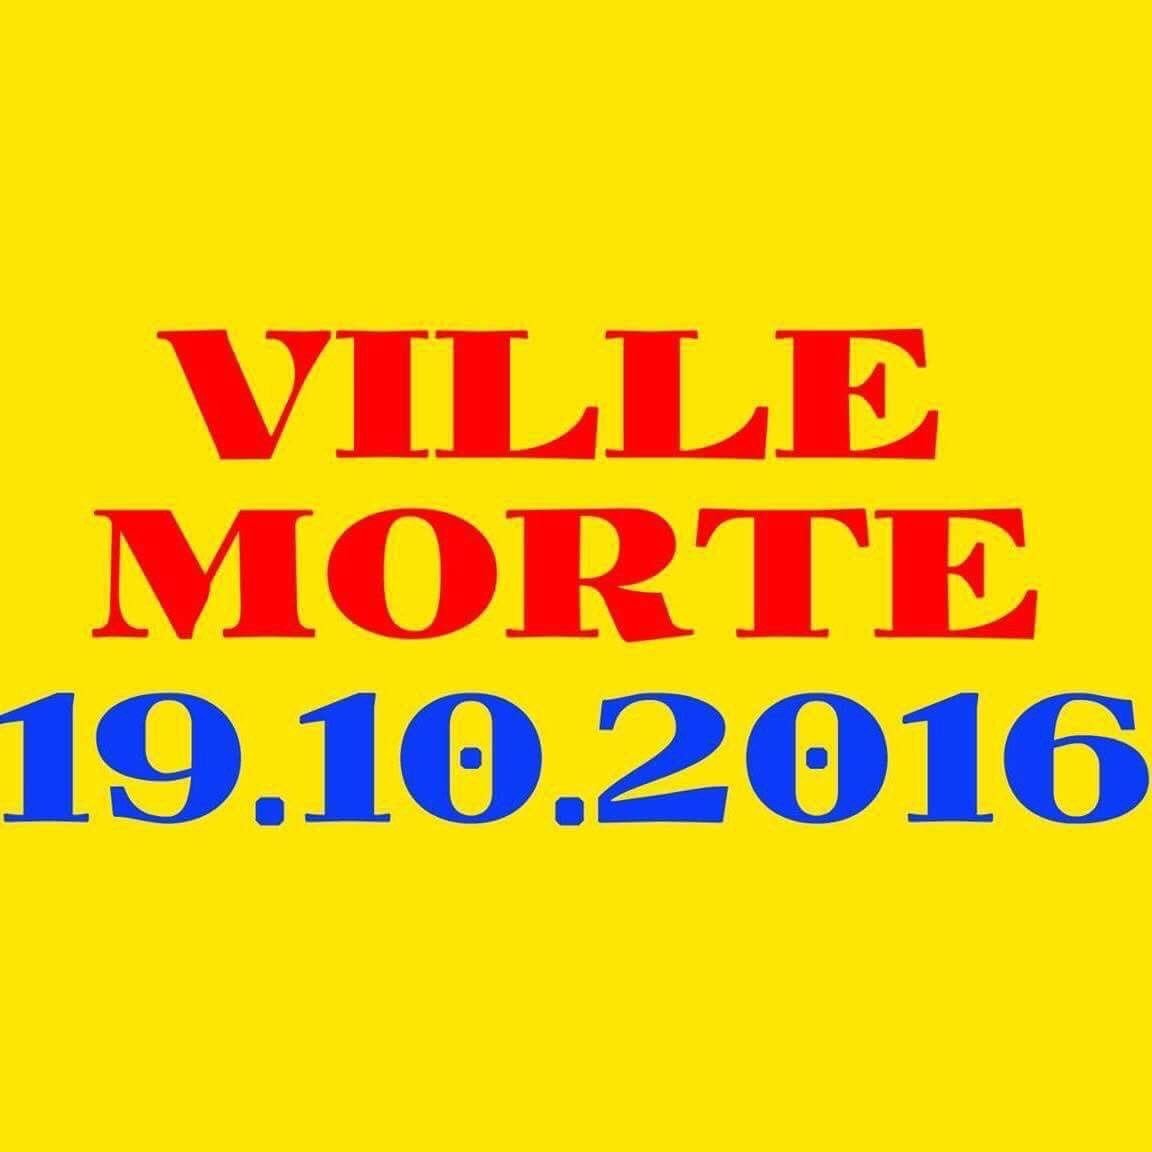 Ville-morte du 18 octobre 2016